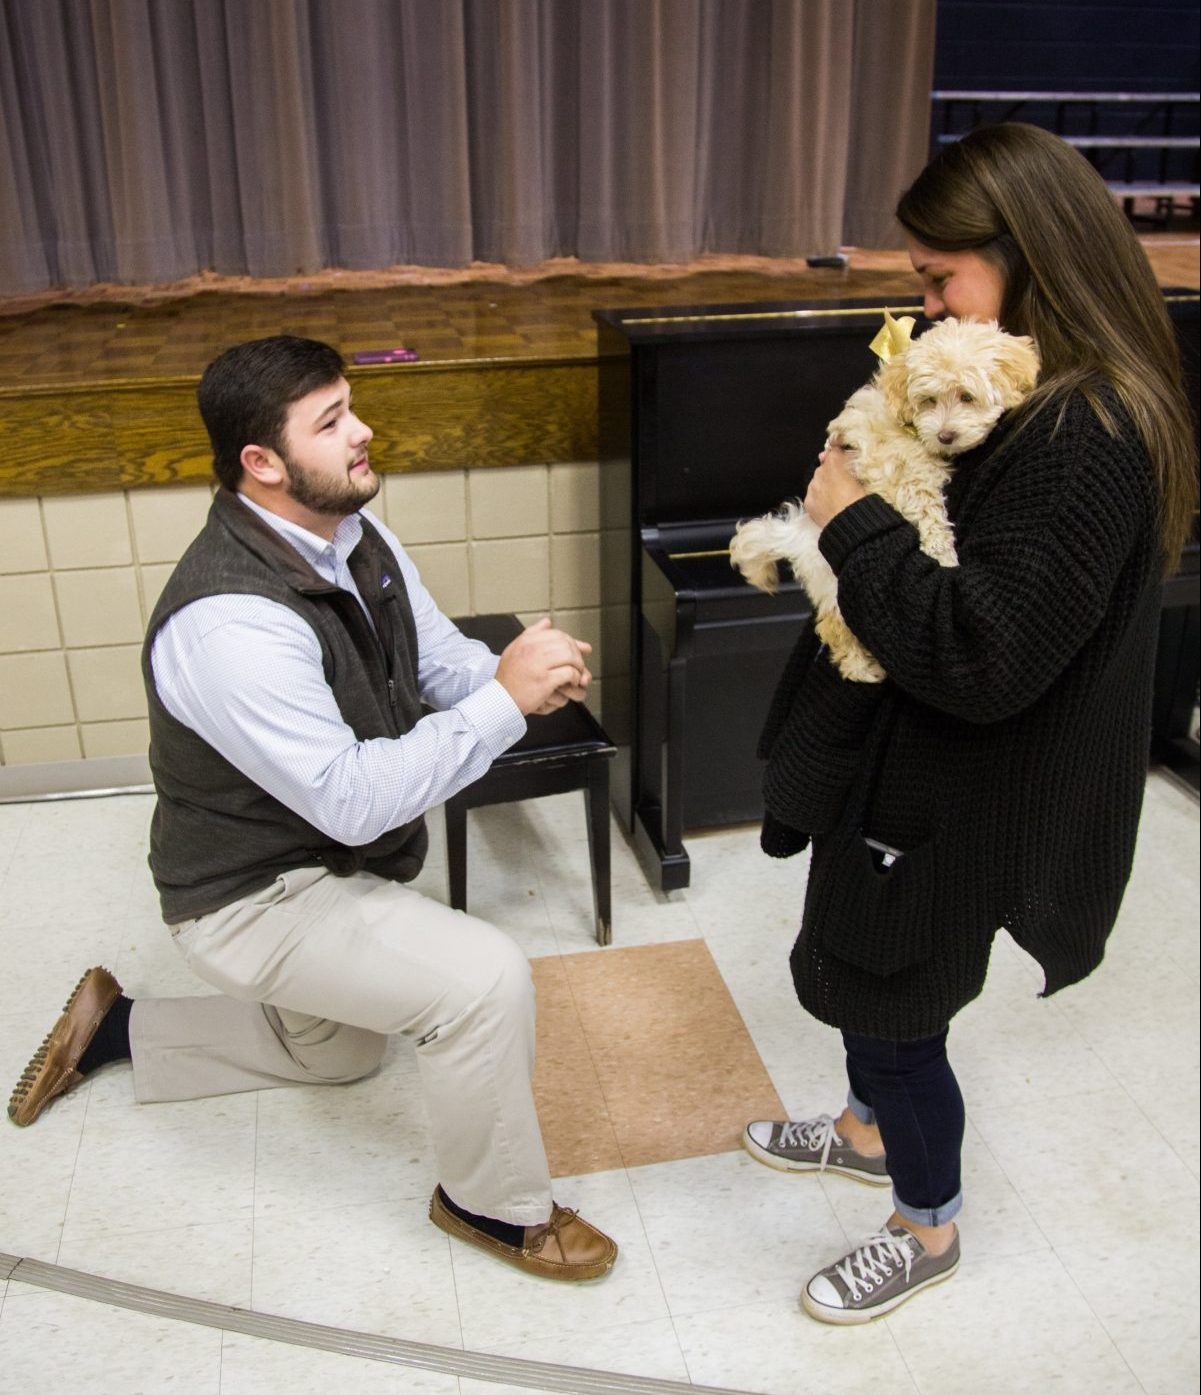 Chestnut Elementary: Teacher's Students Help With Adorable PUPPY Proposal